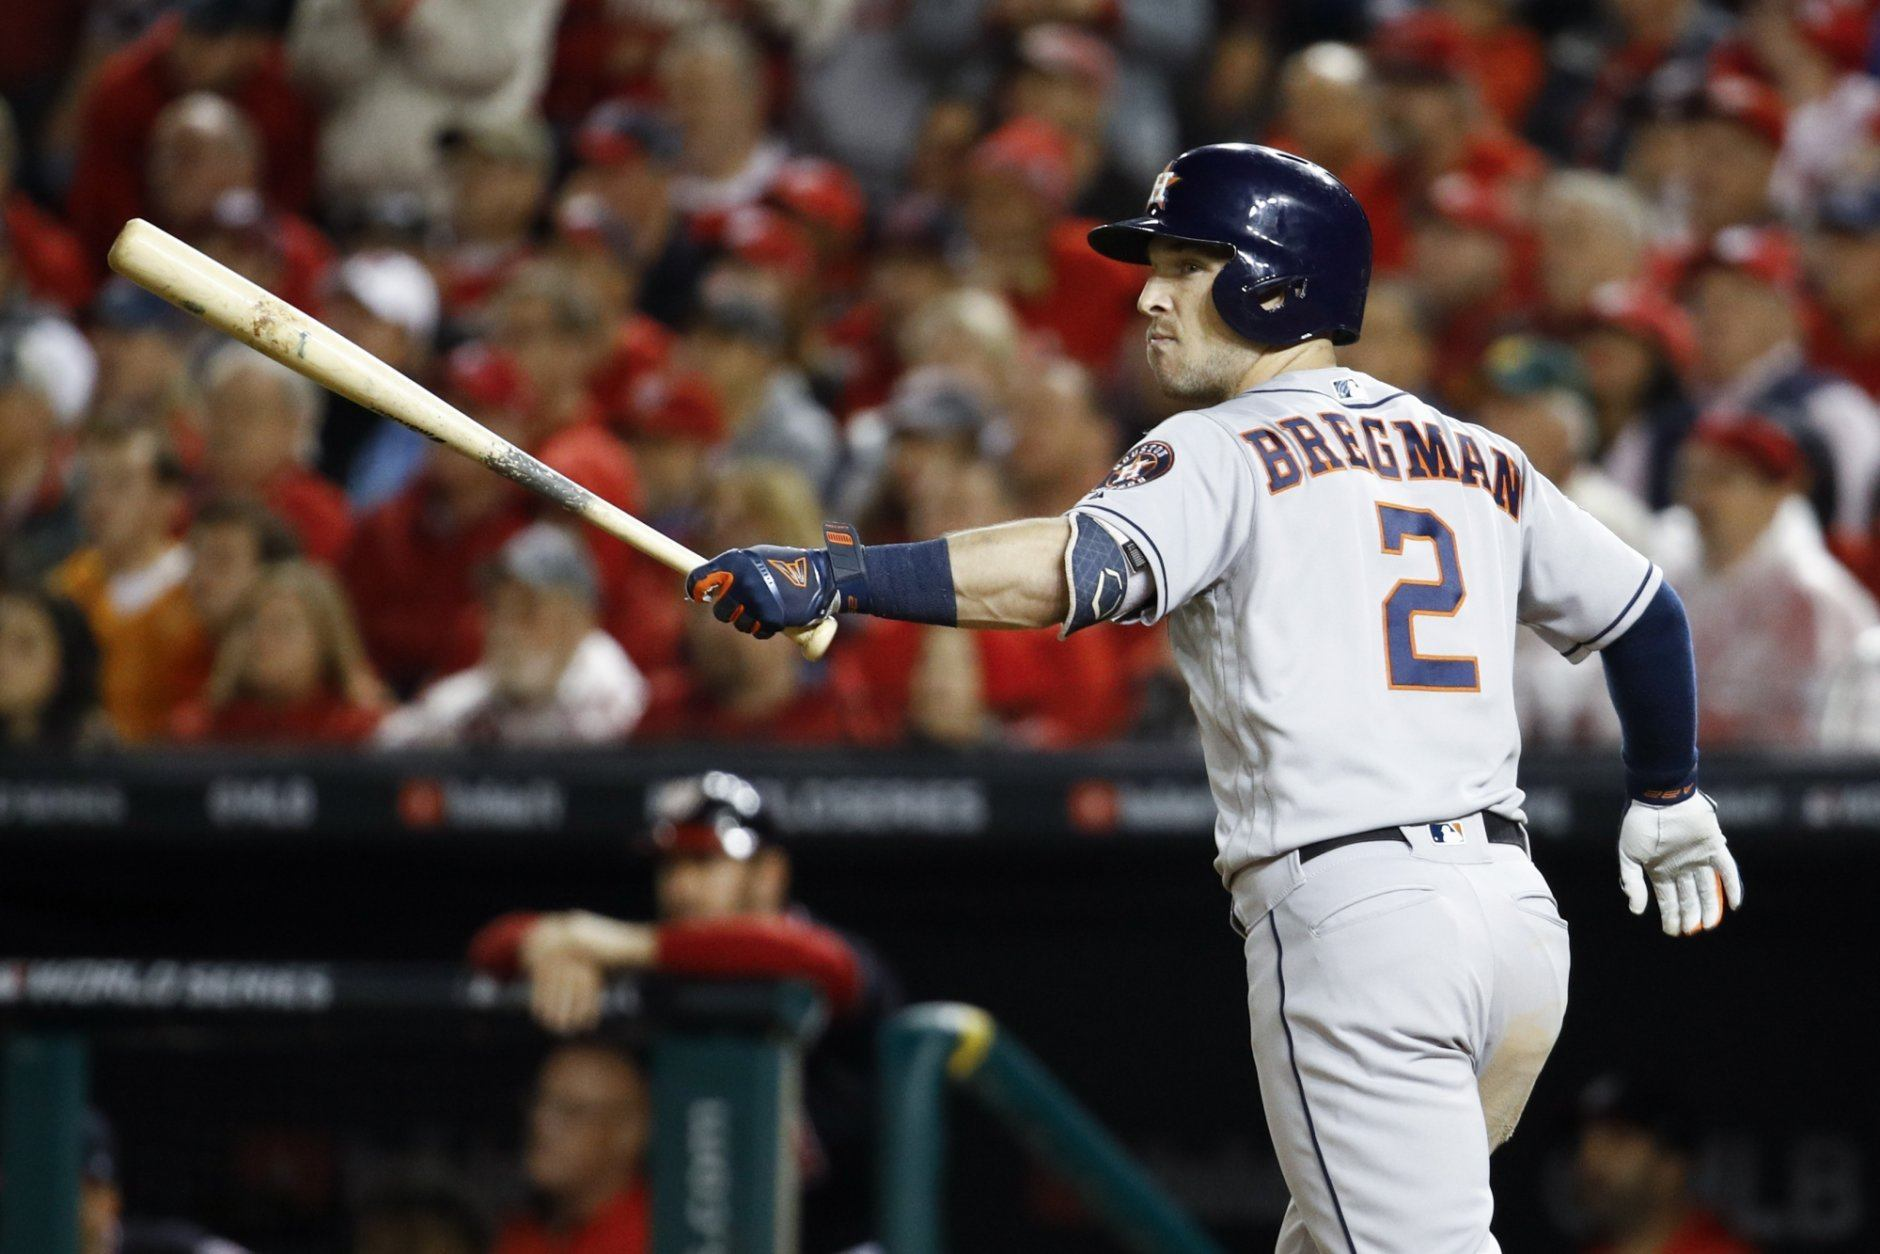 <p><strong>American League MVP</strong></p> <p>Alex Bregman: 100</p> <p>Mike Trout: 96.48</p> <p>Marcus Semien: 92.58</p> <p>Rafael Devers: 90.12</p> <p>Xander Bogaerts: 88.70</p> <p>Ah, the annual Mike Trout debate. Trout was well on his way to his third MVP in the last six seasons before his year was cut short prematurely on Sept. 7. While he still led the AL in OPS, that opened the door for Alex Bregman, who jumped ahead in a number of counting stats (runs, RBI, XBH) for the 107-win Astros. In his final 19 games after Trout's injury, Bregman posted a 1.195 OPS and slugged seven home runs, walking 19 times against just seven strikeouts. If there is any recency bias in the voting, his strong finish – like Yelich's last year – could be the difference. In addition, there is no surprise around these parts that Marcus Semien snagged third place after his monster season. It will be interesting to see where D.J. LeMahieu (eighth in the model) lands in the final vote.</p>